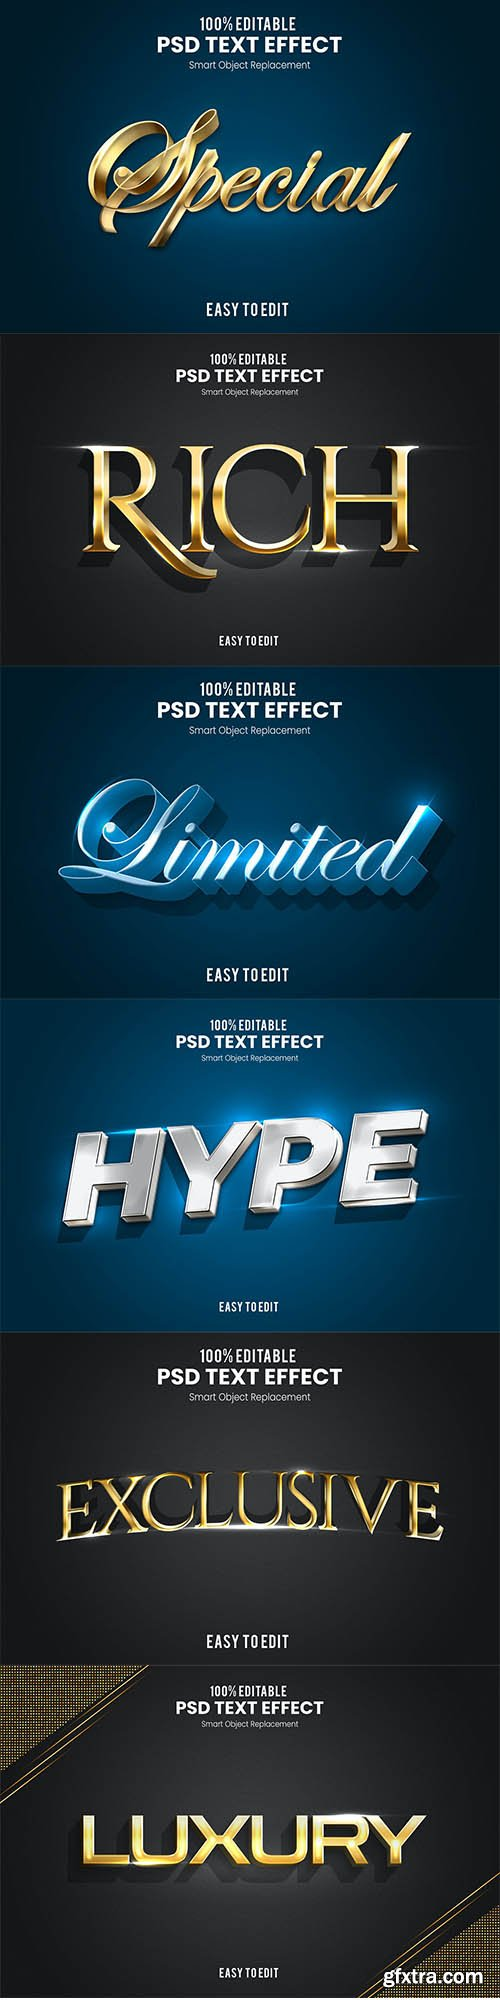 Elegant 3D PSD Text Effect